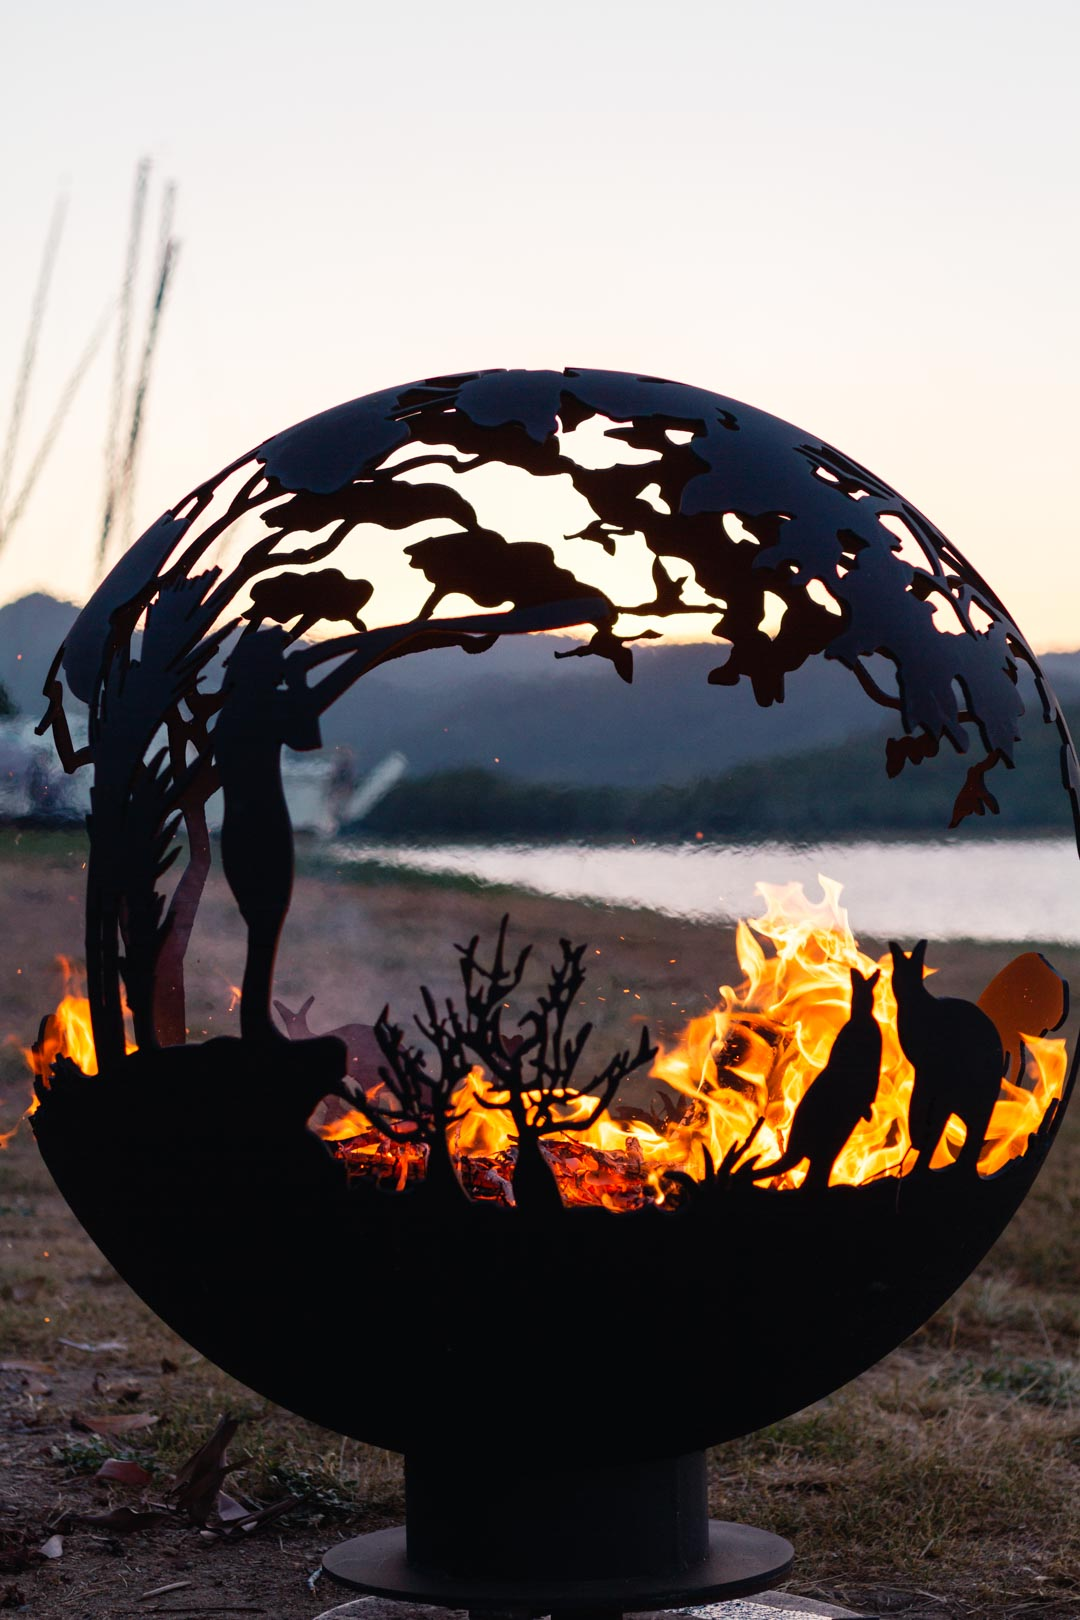 Aussie outback firepit for sale